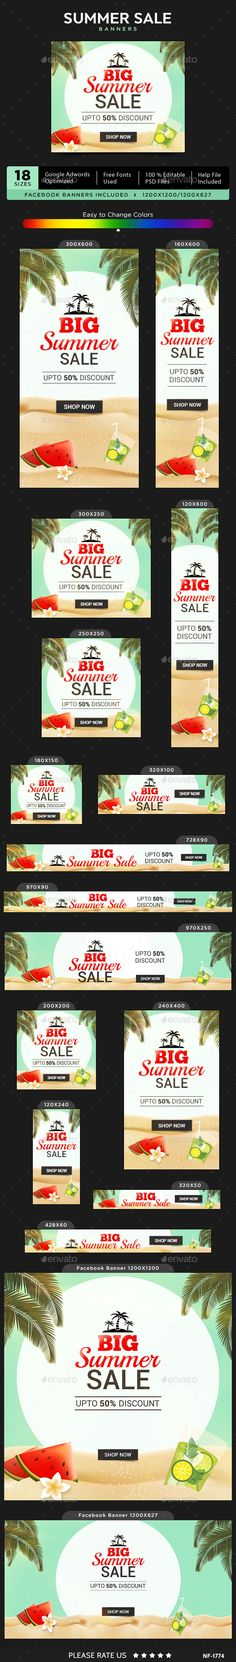 Big Summer Sale Banners — Photoshop PSD #social media #coupon • Available here → https://graphicriver.net/item/big-summer-sale-banners/19909490?ref=pxcr